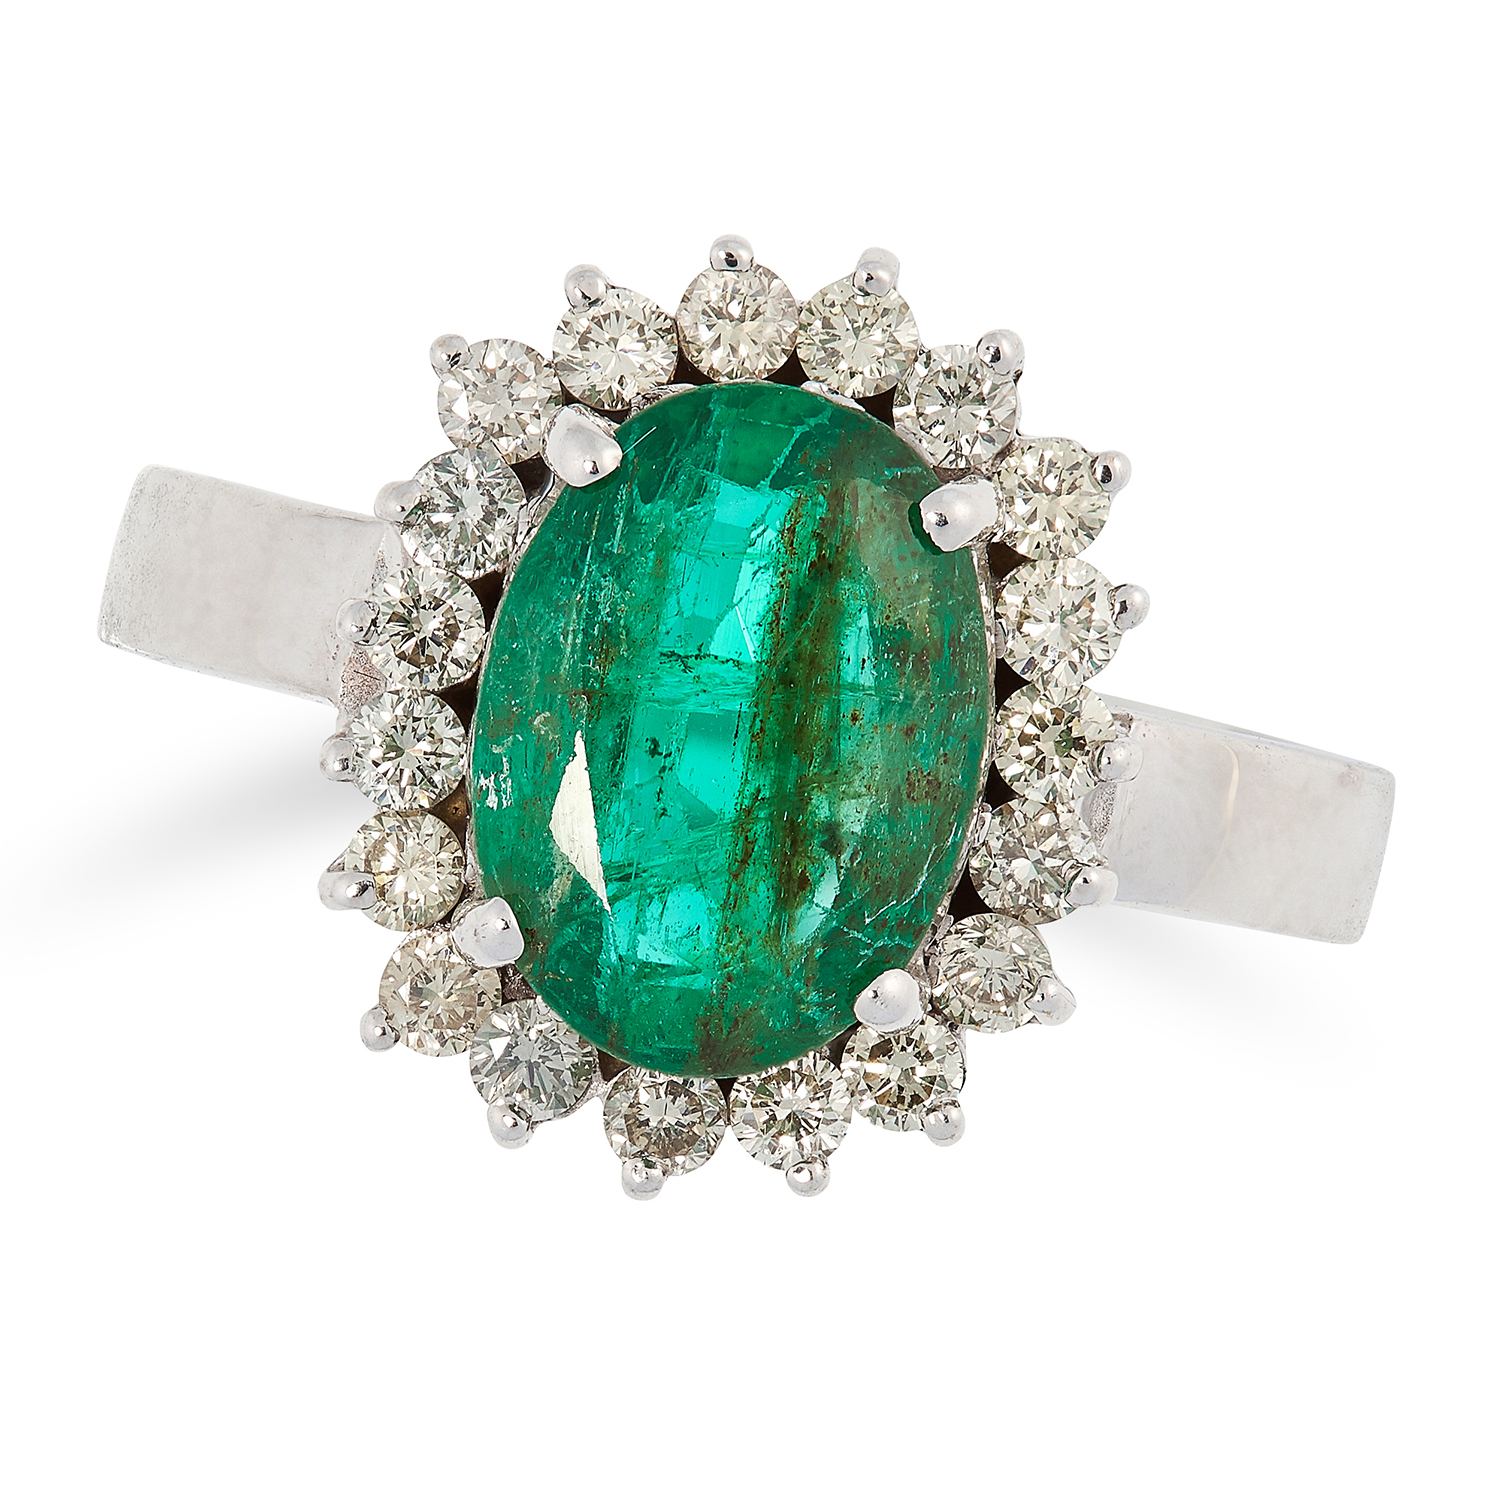 Los 32 - EMERALD AND DIAMOND CLUSTER RING set with an oval cut emerald in a cluster of round cut diamonds, si